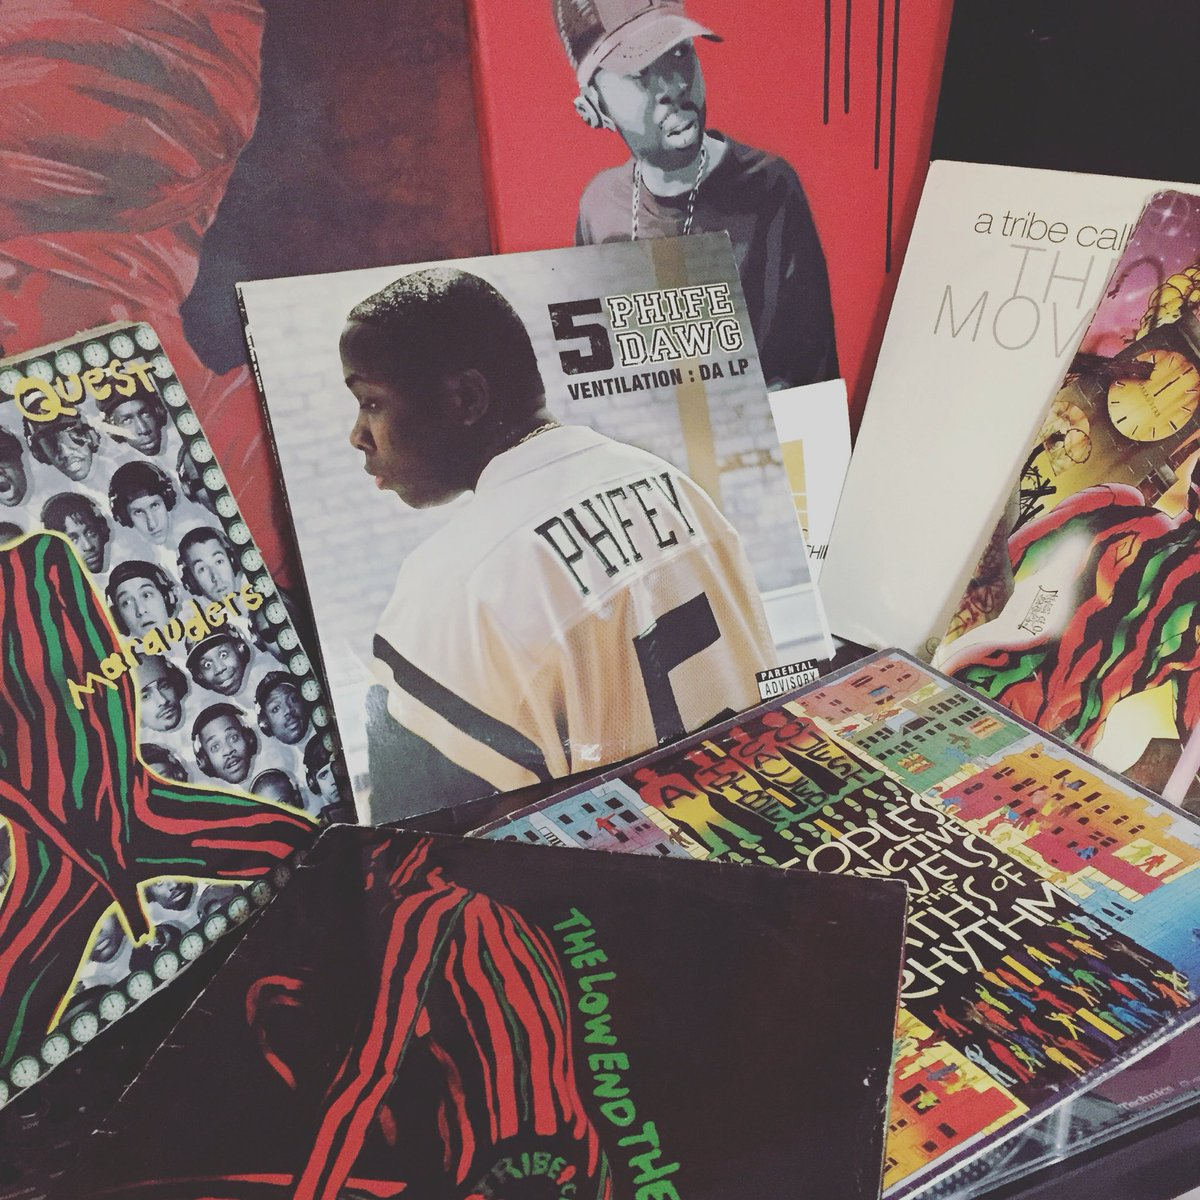 All of this before the age of 30. Rest in power #Phife https://t.co/ISg1oJRklW